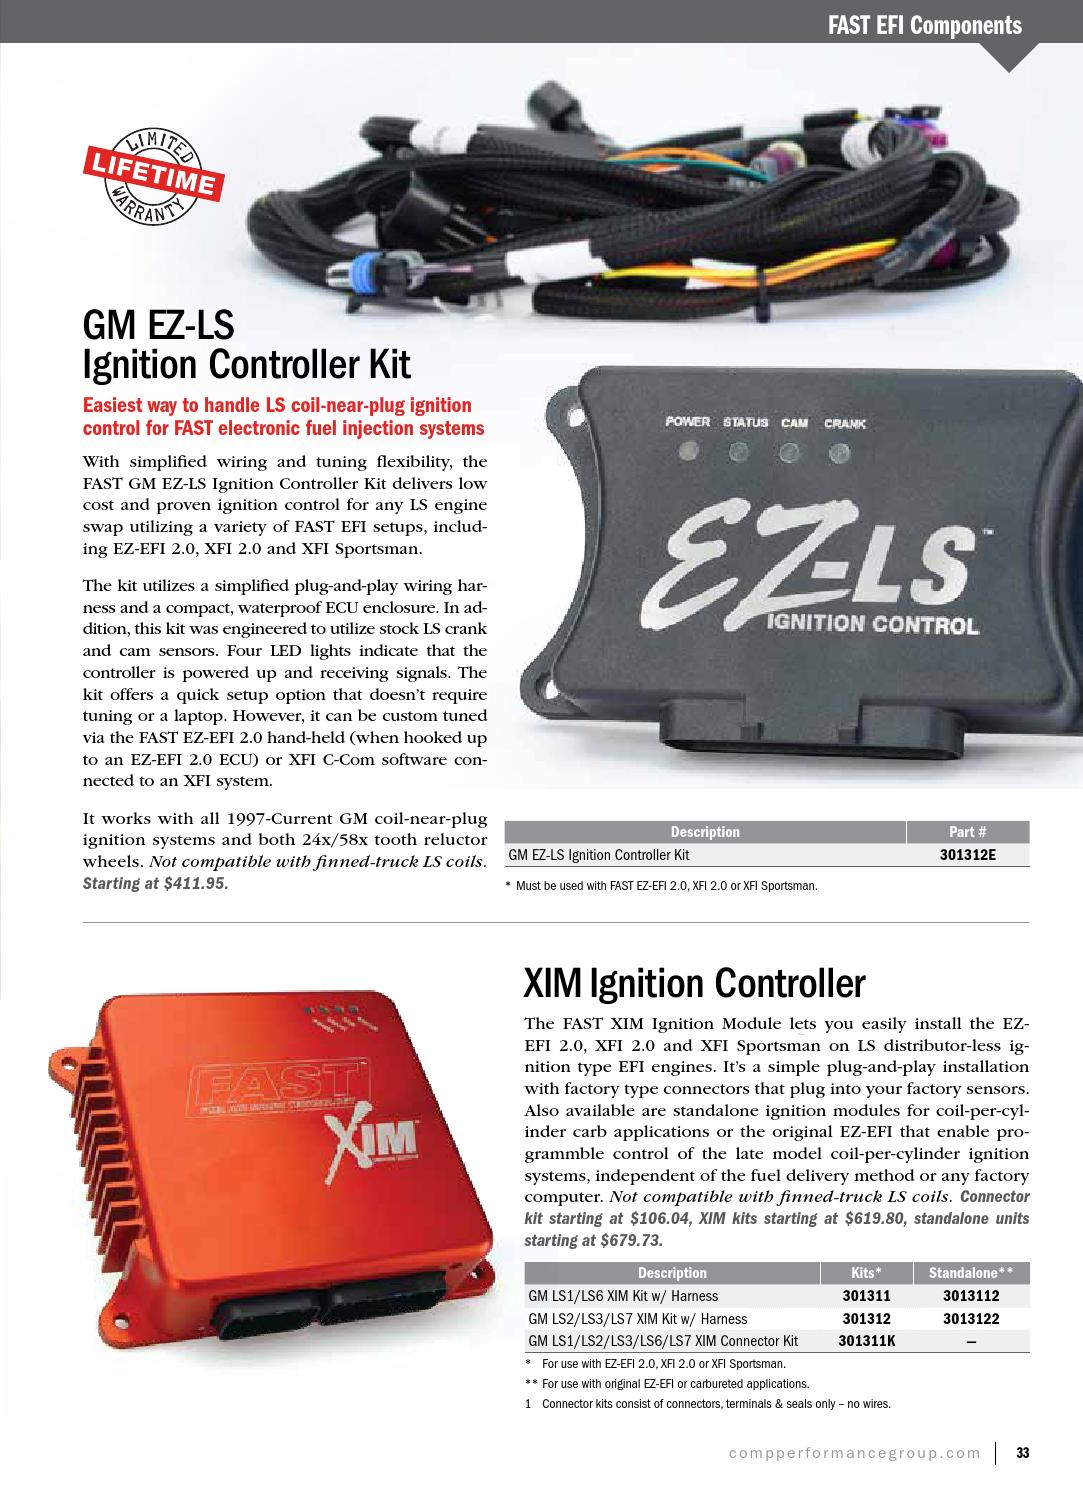 2014 Ls Power Magazine By Comp Performance Group Issuu Fast Efi Wire Harness